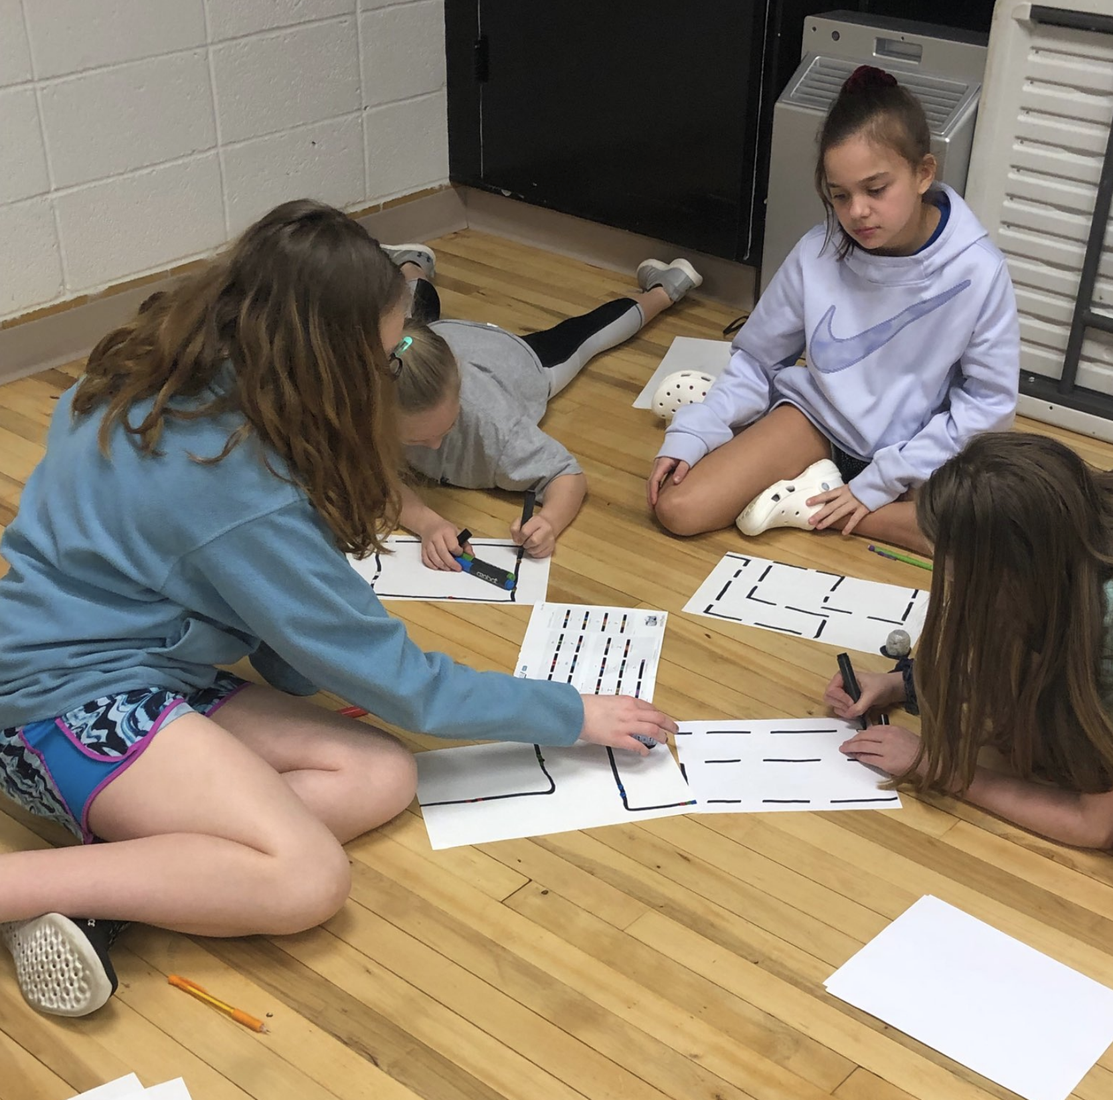 Students plan and design their Ozobot course